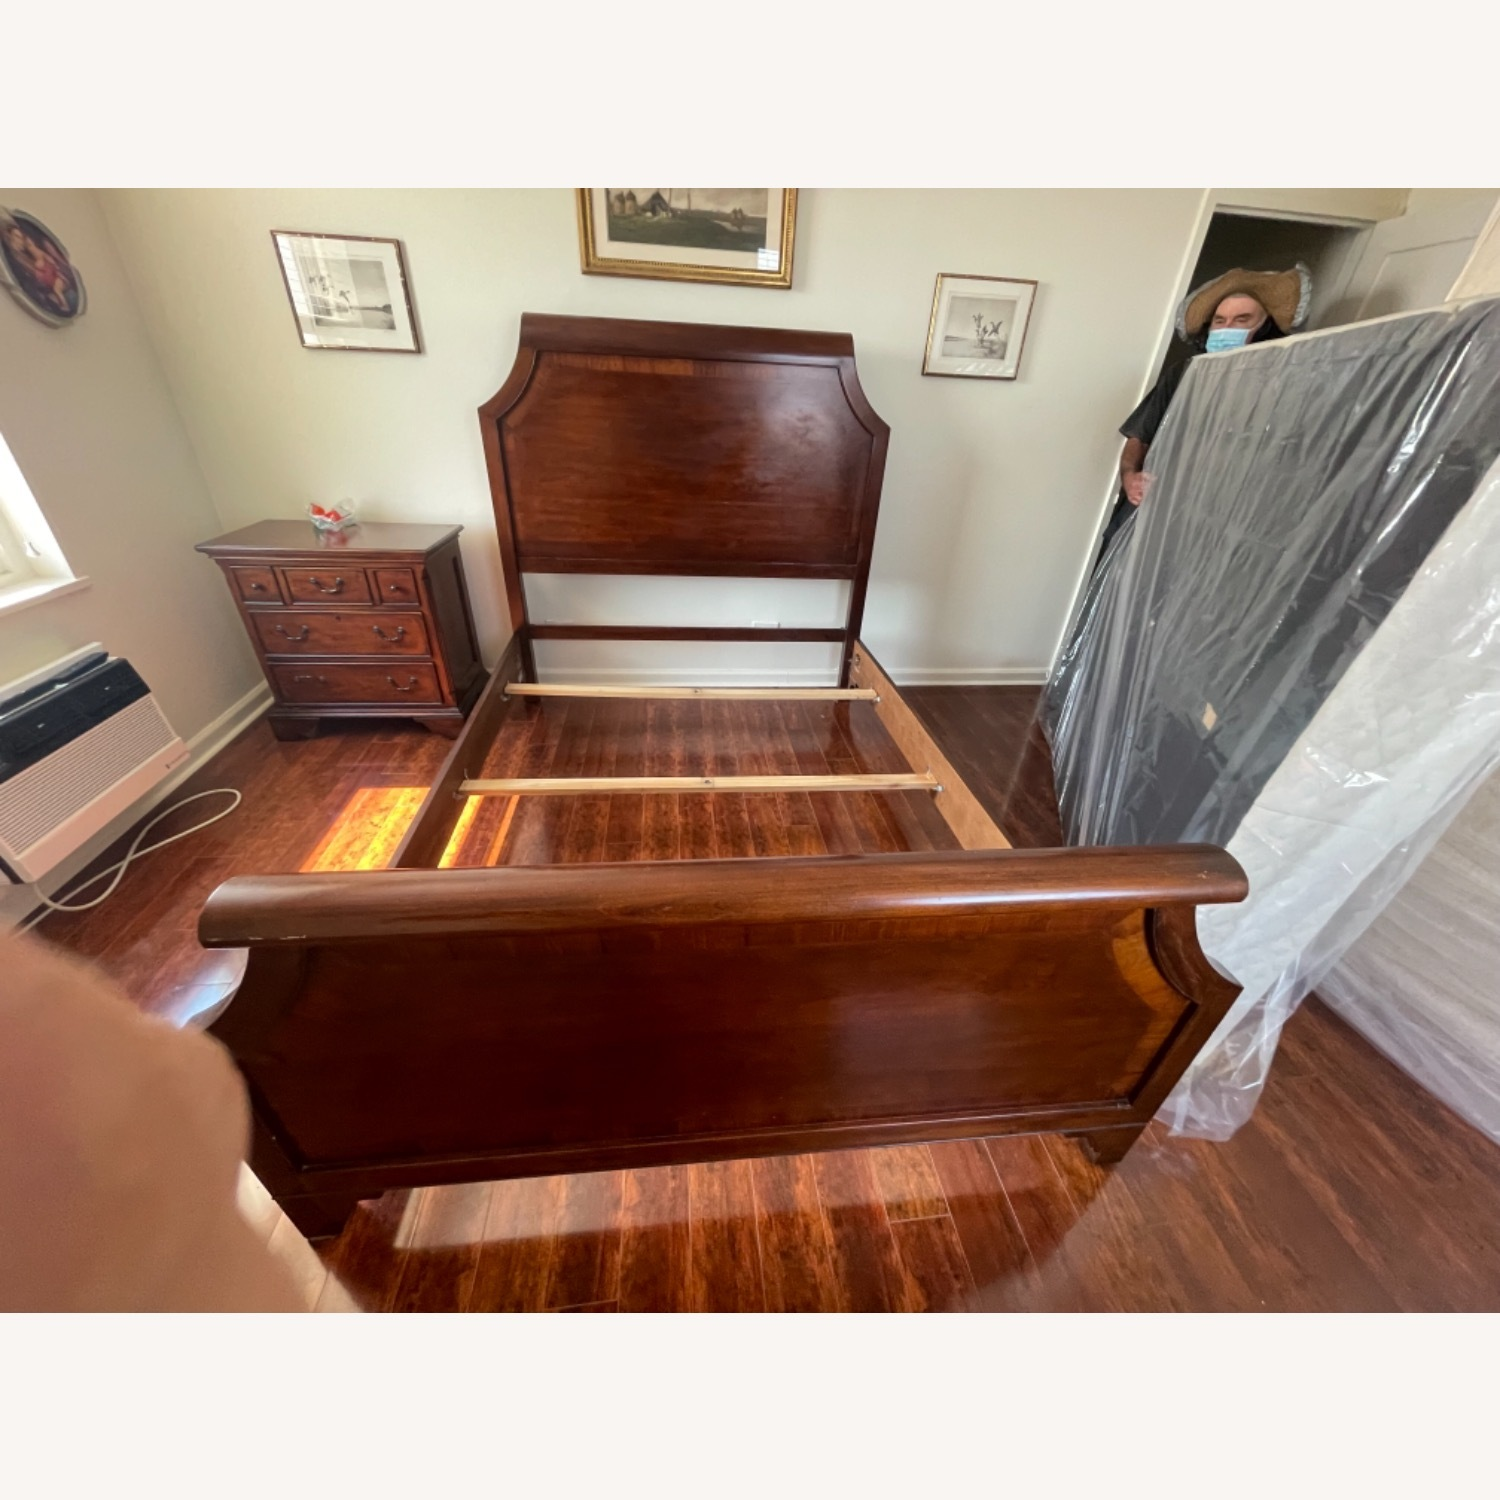 Sold Wood Inlaid Queen Size Bed - image-4